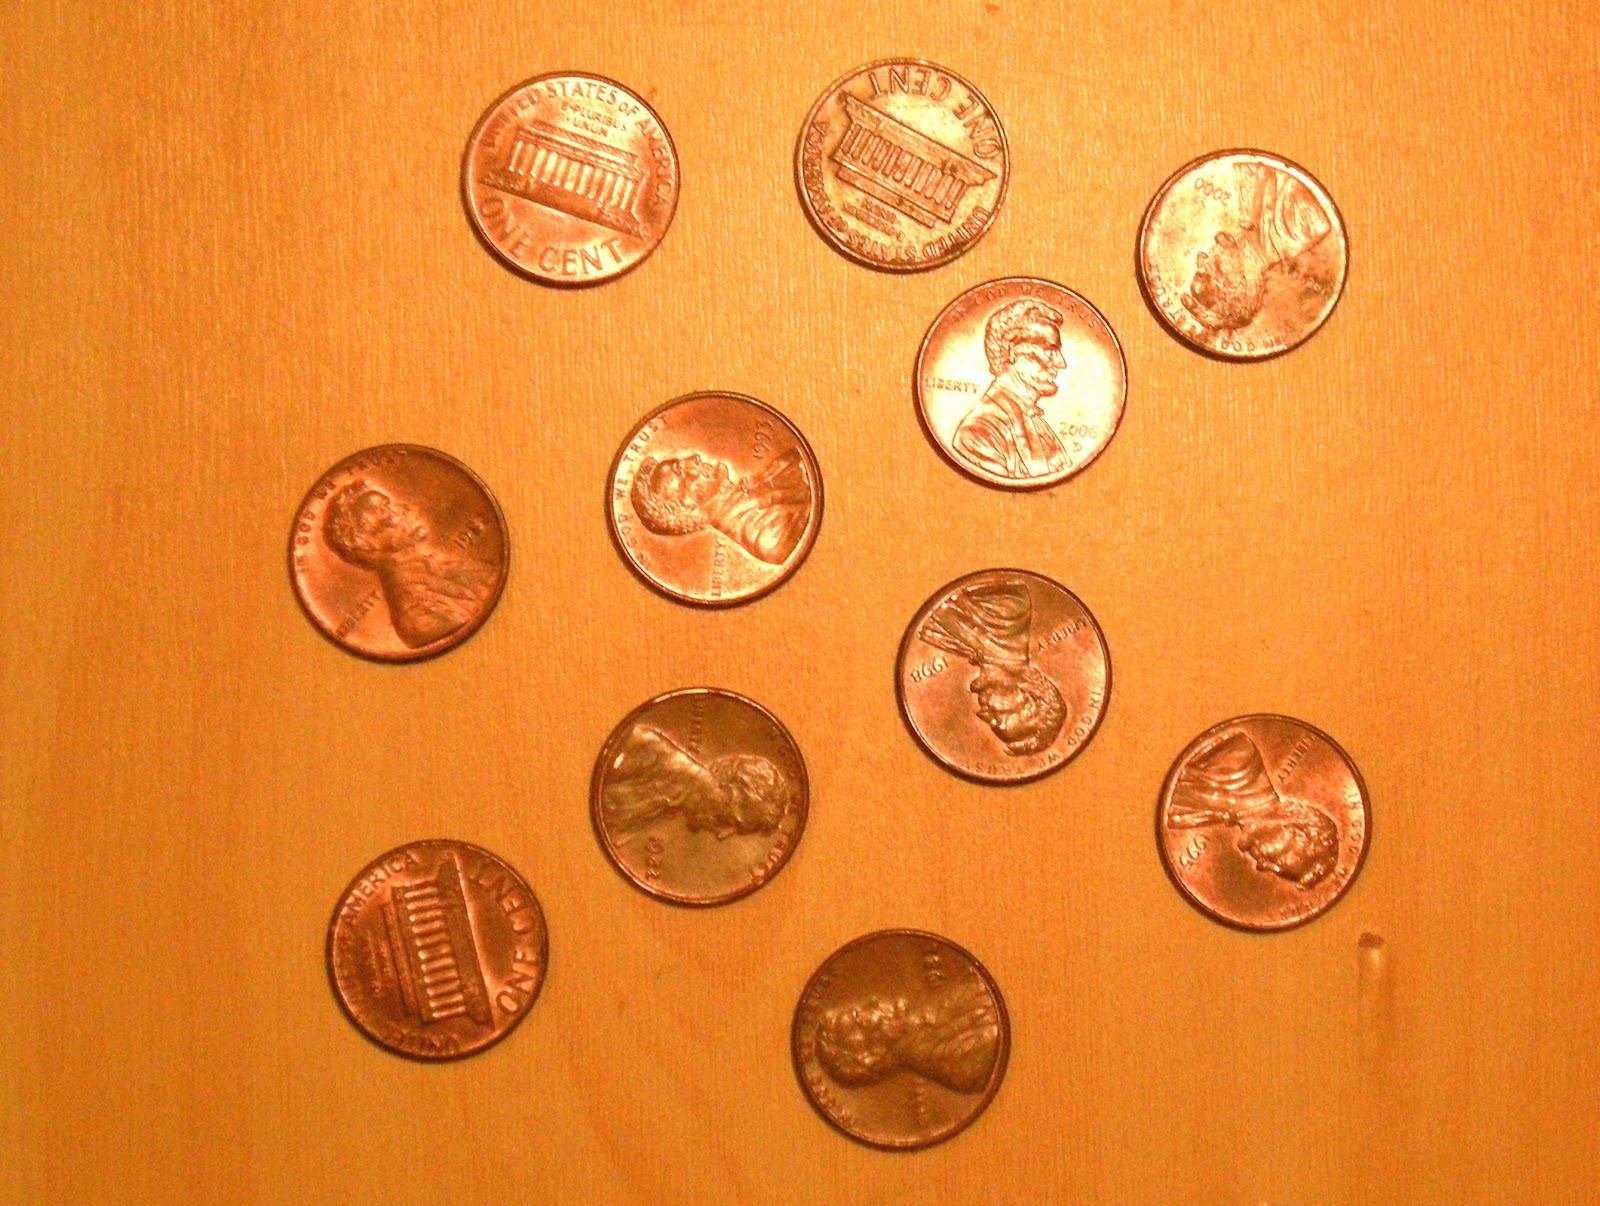 percentage of times the coin comes up heads